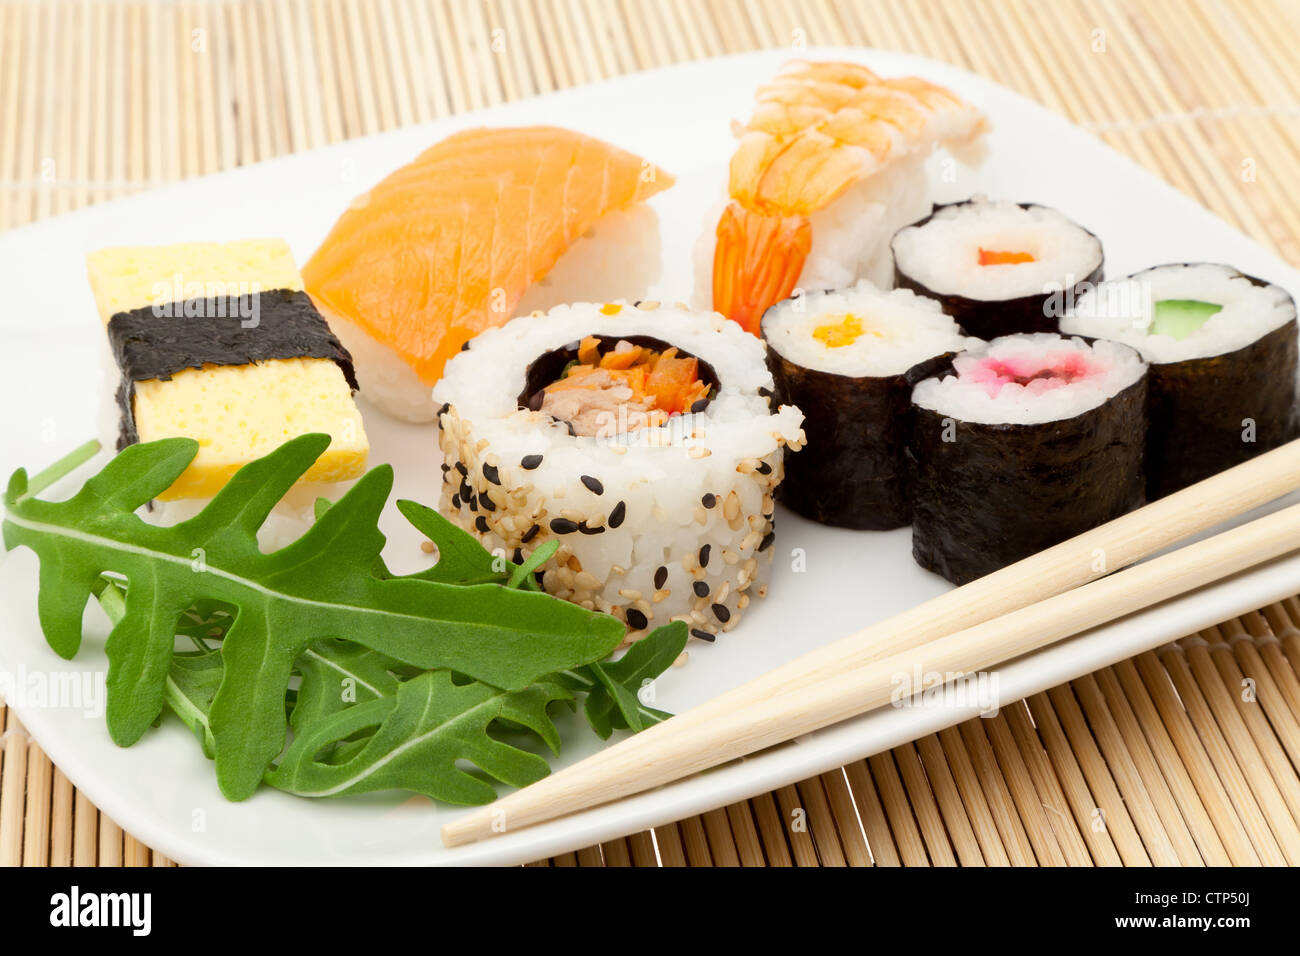 Plate of Sushi mix with chop sticks - studio shot - Stock Image